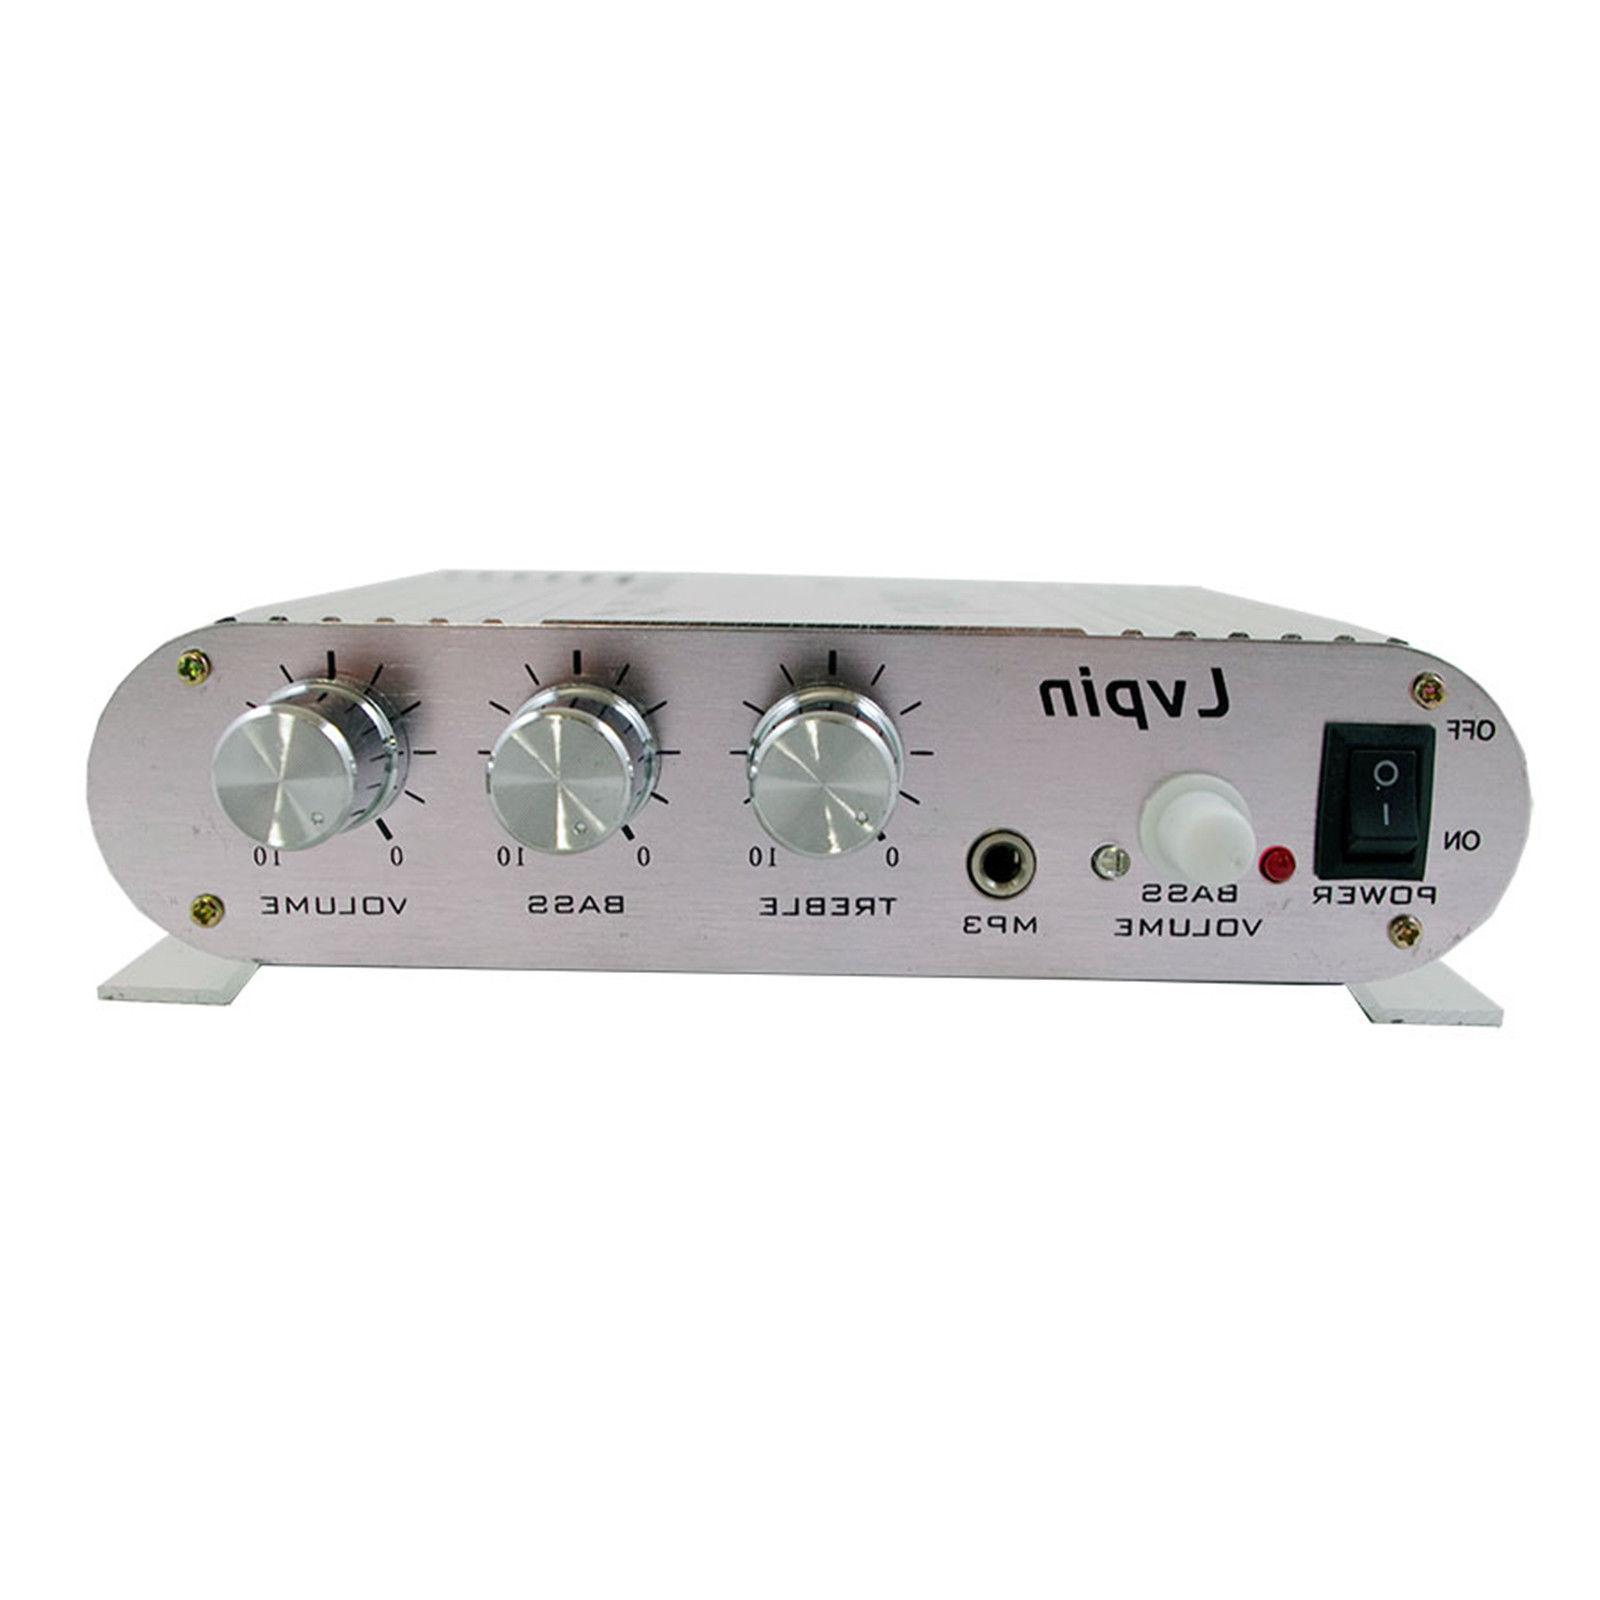 Lvpin 2.1 Amplifier Stereo & AC